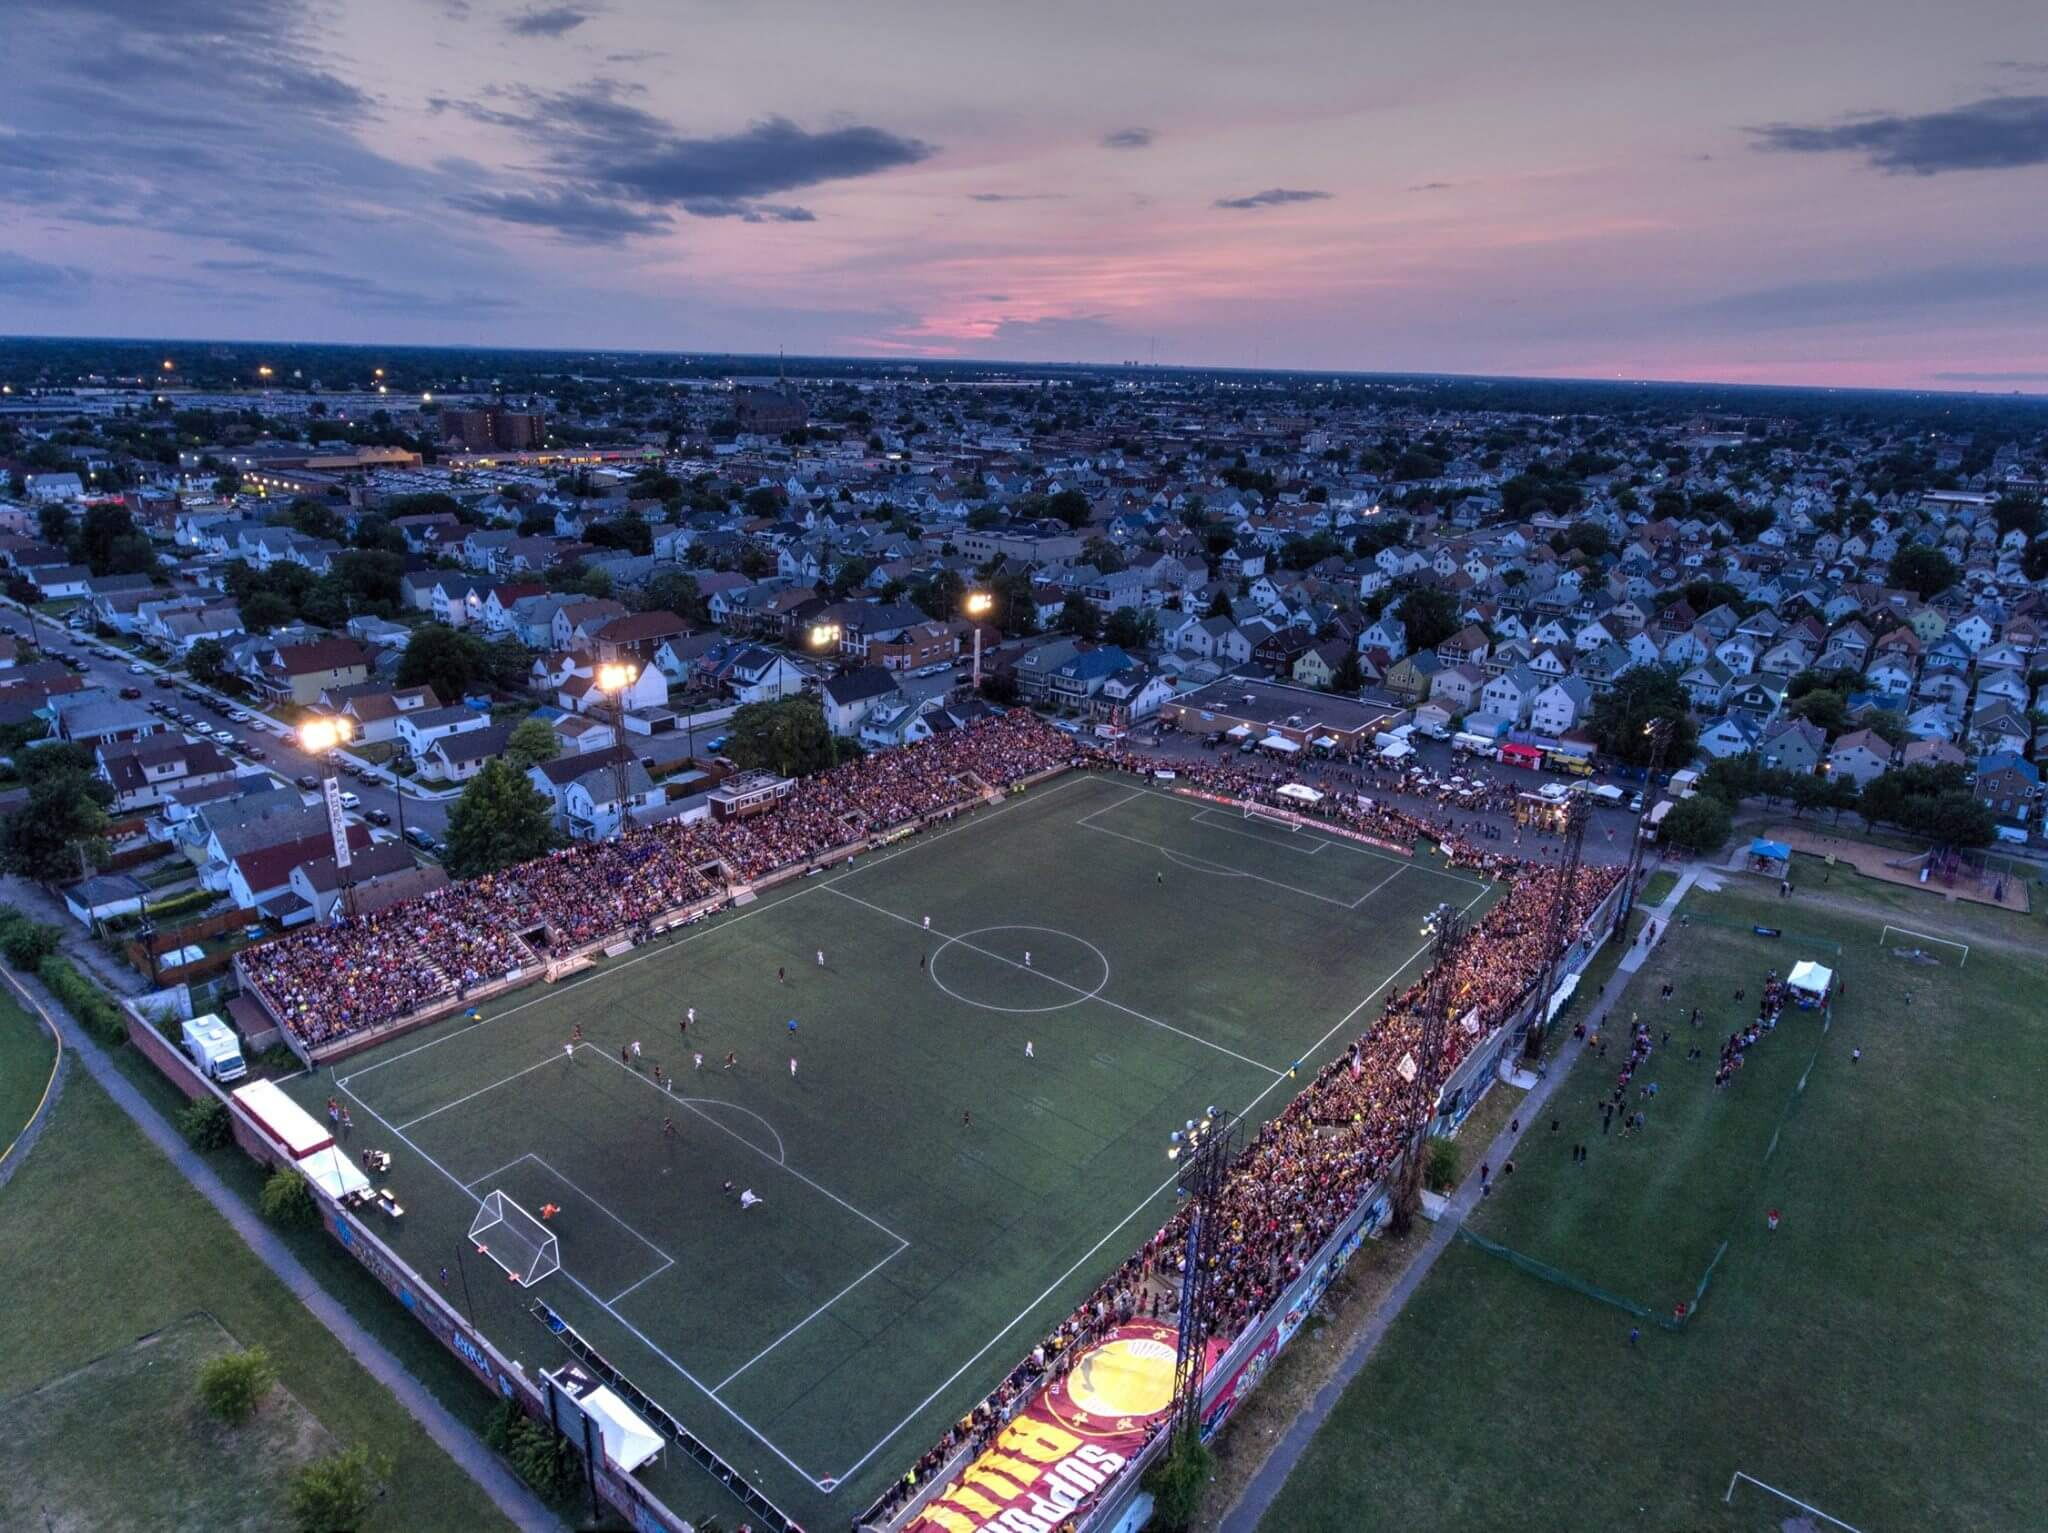 https://www.facebook.com/detroitcityfc/photos/a.388827261132149.105707.294353410579535/1879372602077600/?type=3&theater